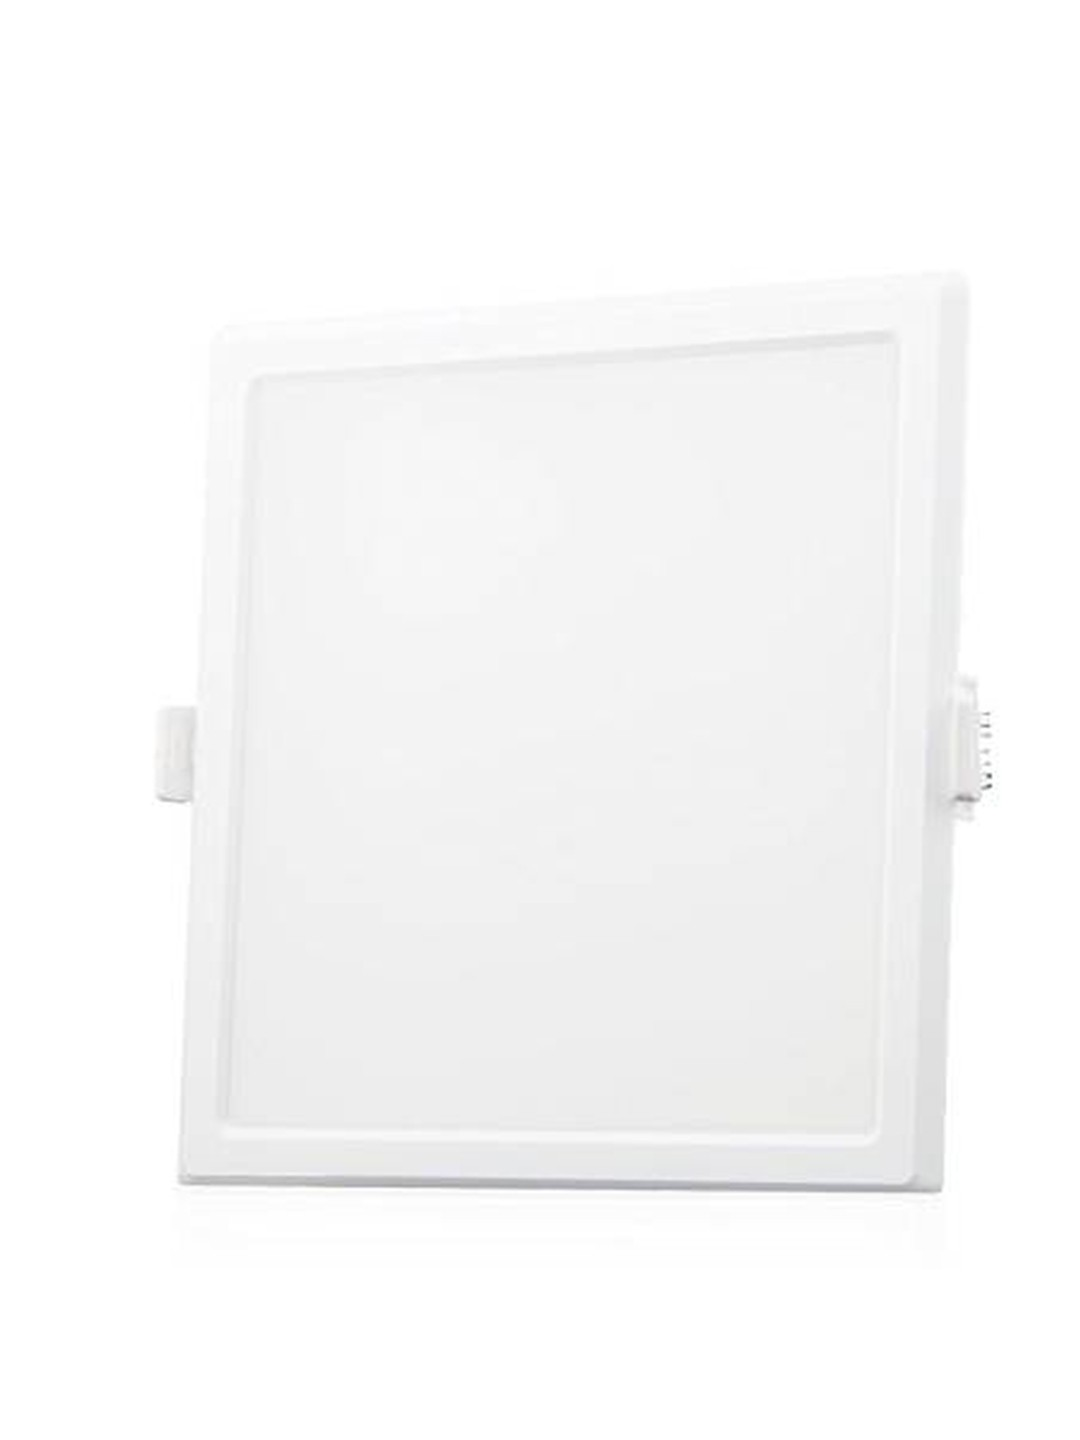 Syska RDL 5 Watt Square LED Recessed Panel Light (Cool Day Light)